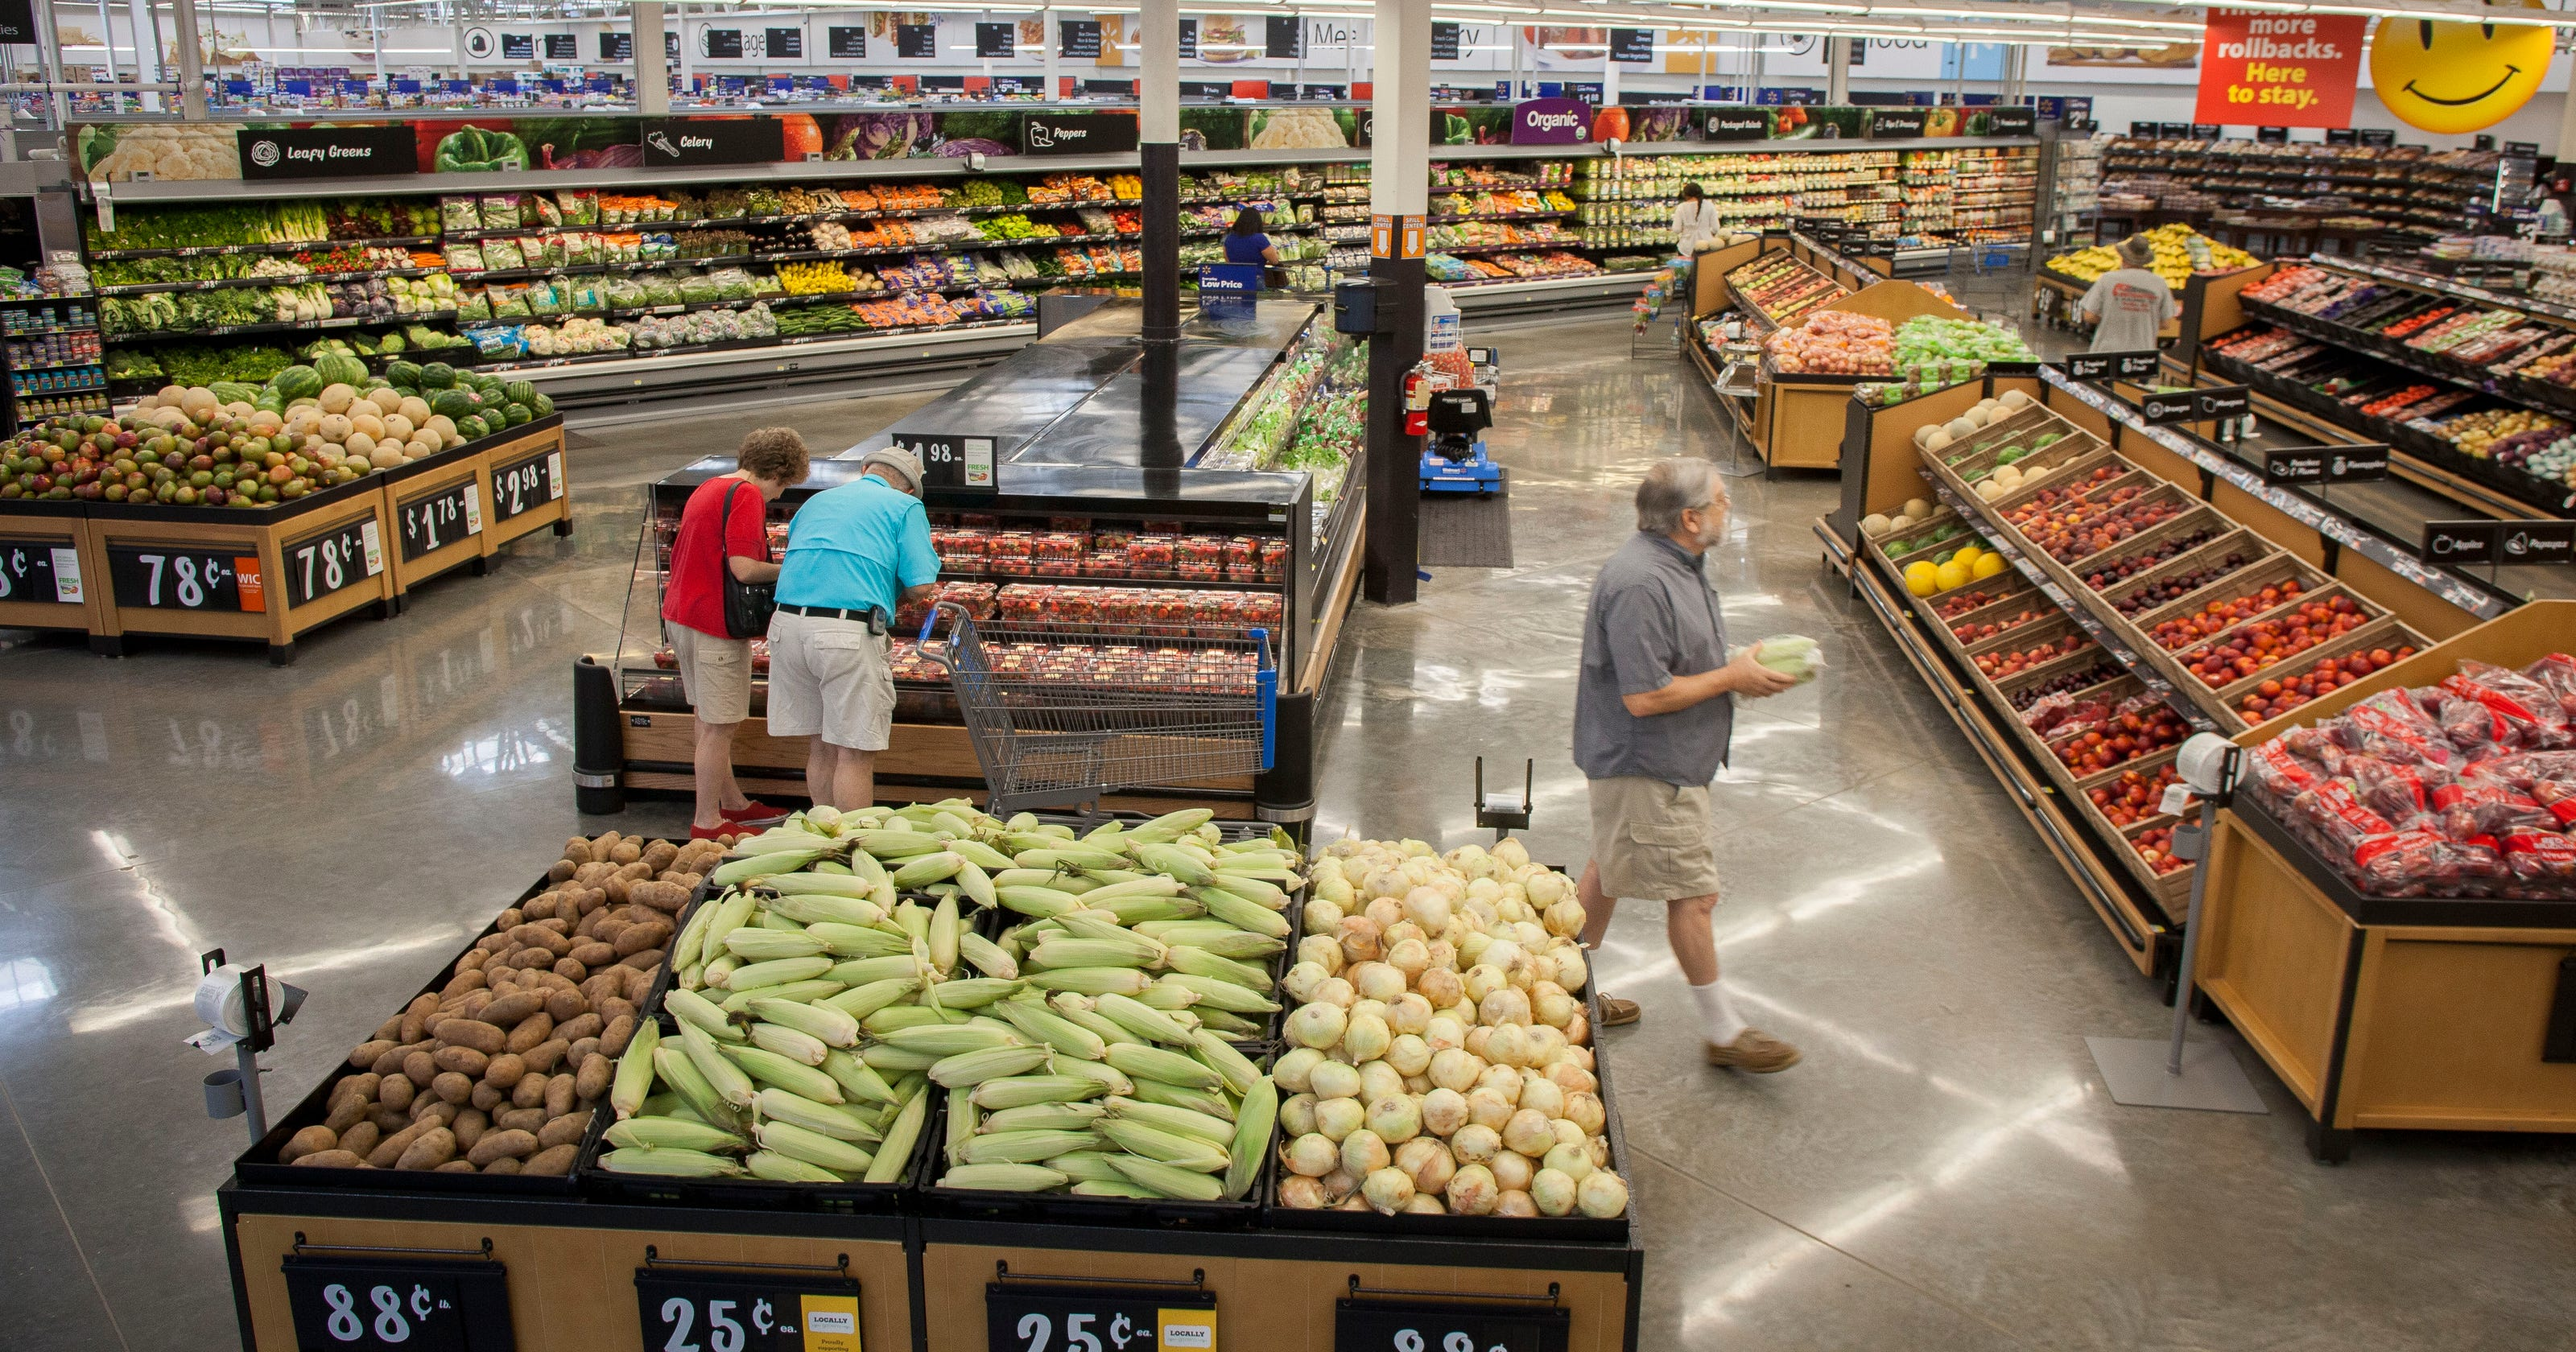 Walmart is taking its groceries upscale